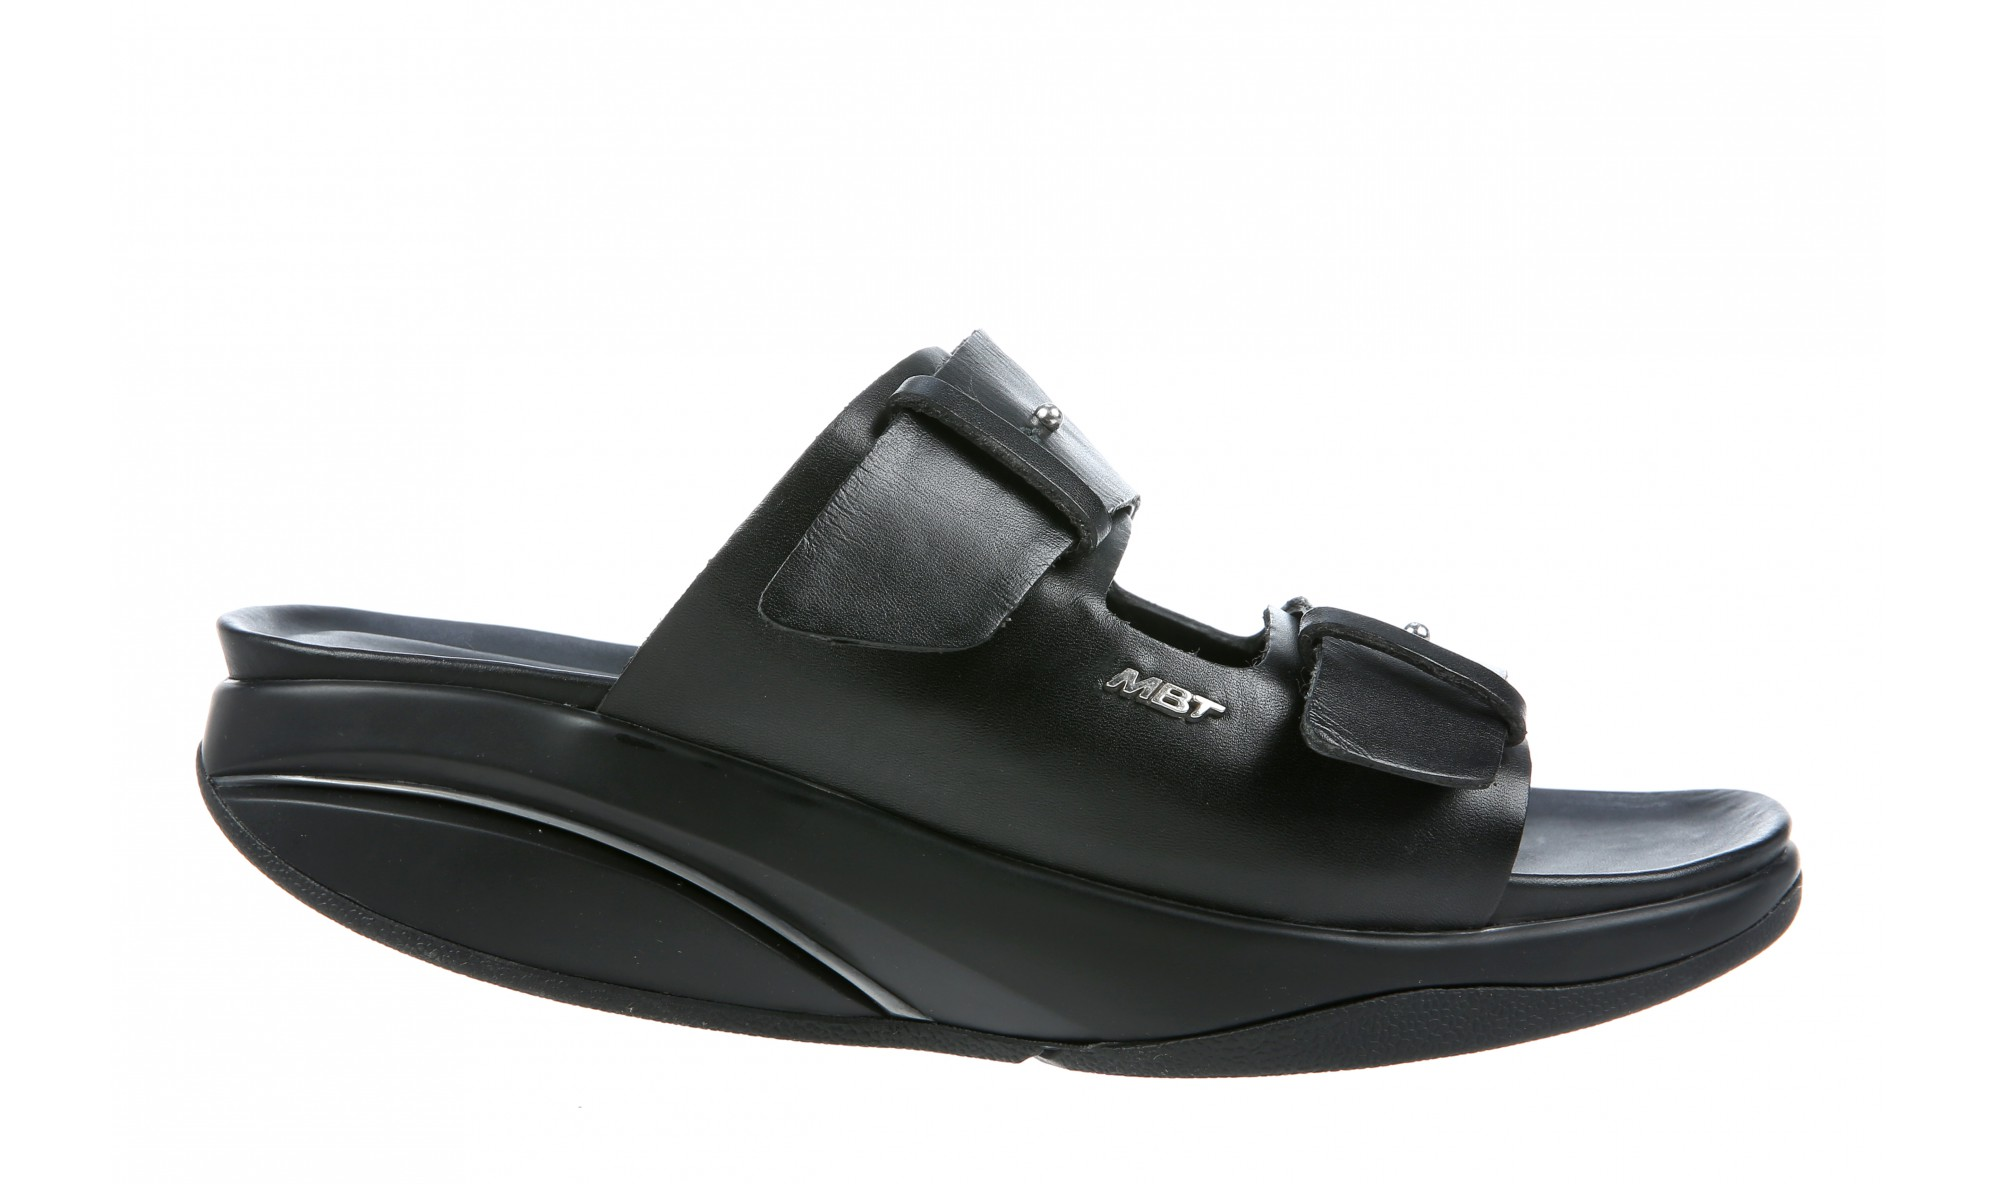 MBT Kimana Women's Sandal Black